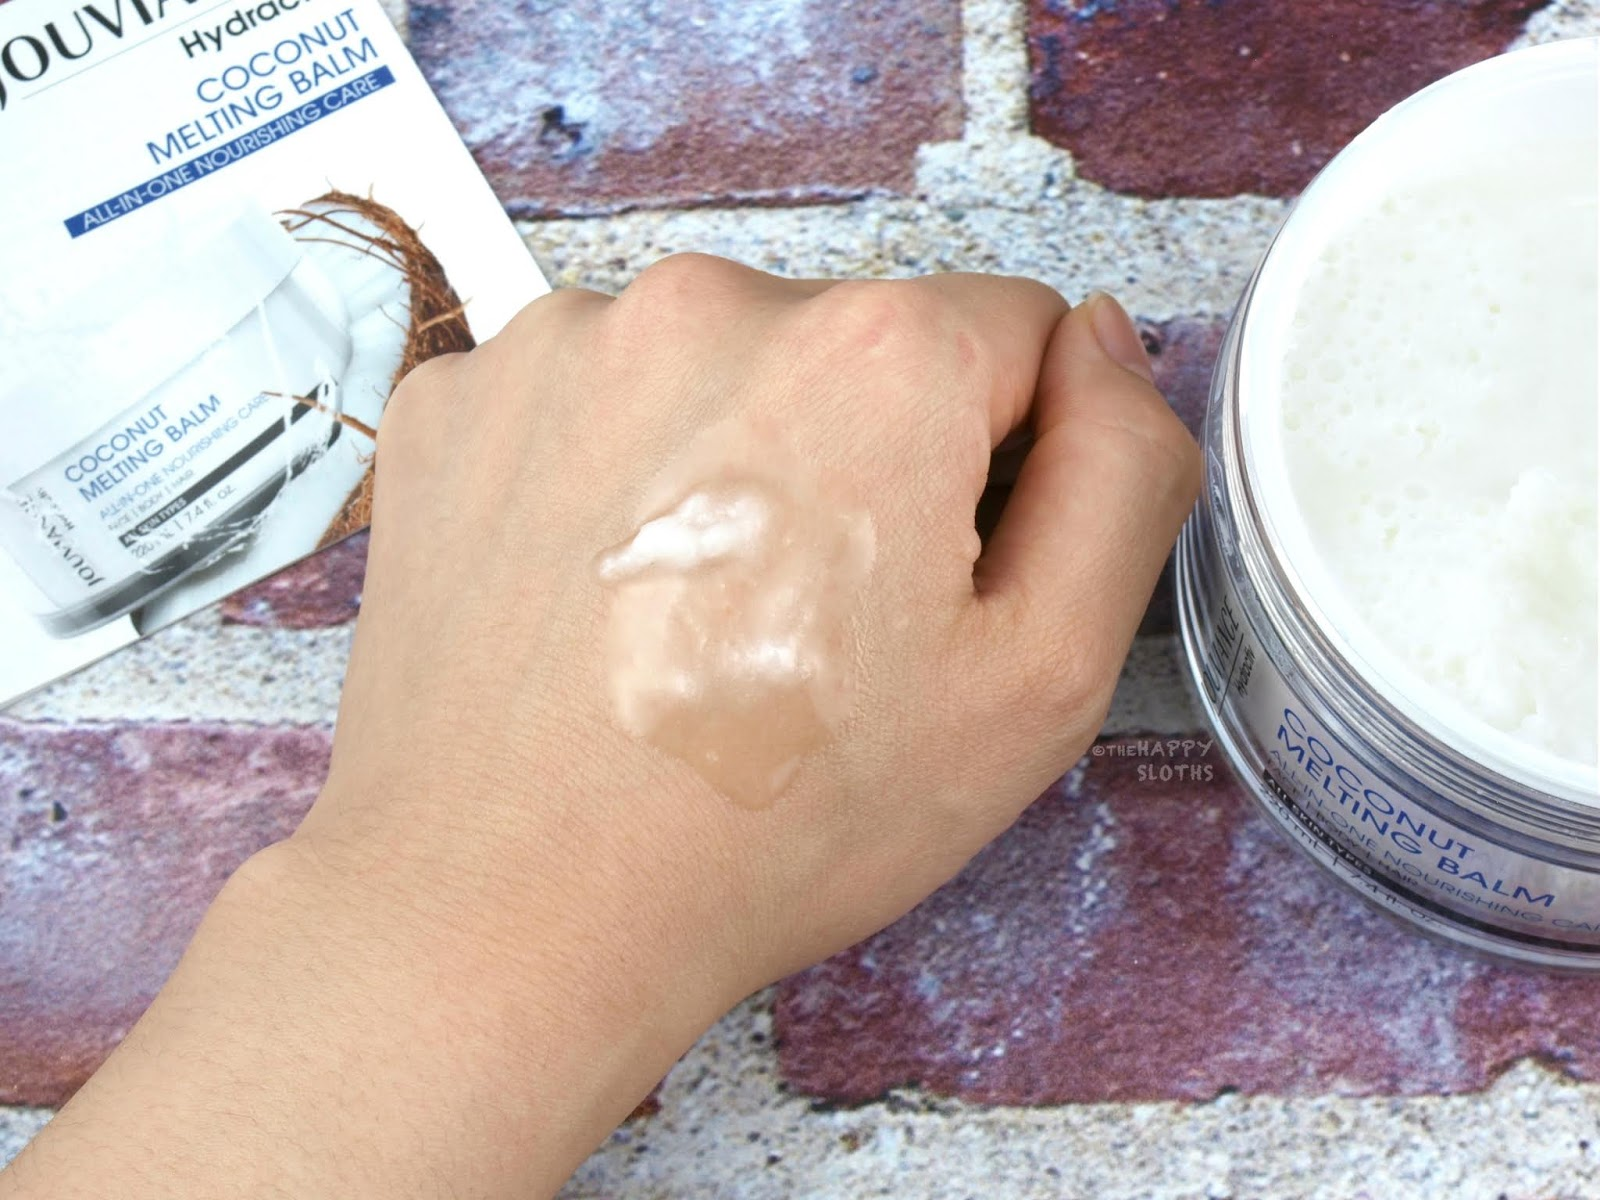 Jouviance | Hydractiv Coconut Melting Balm: Review